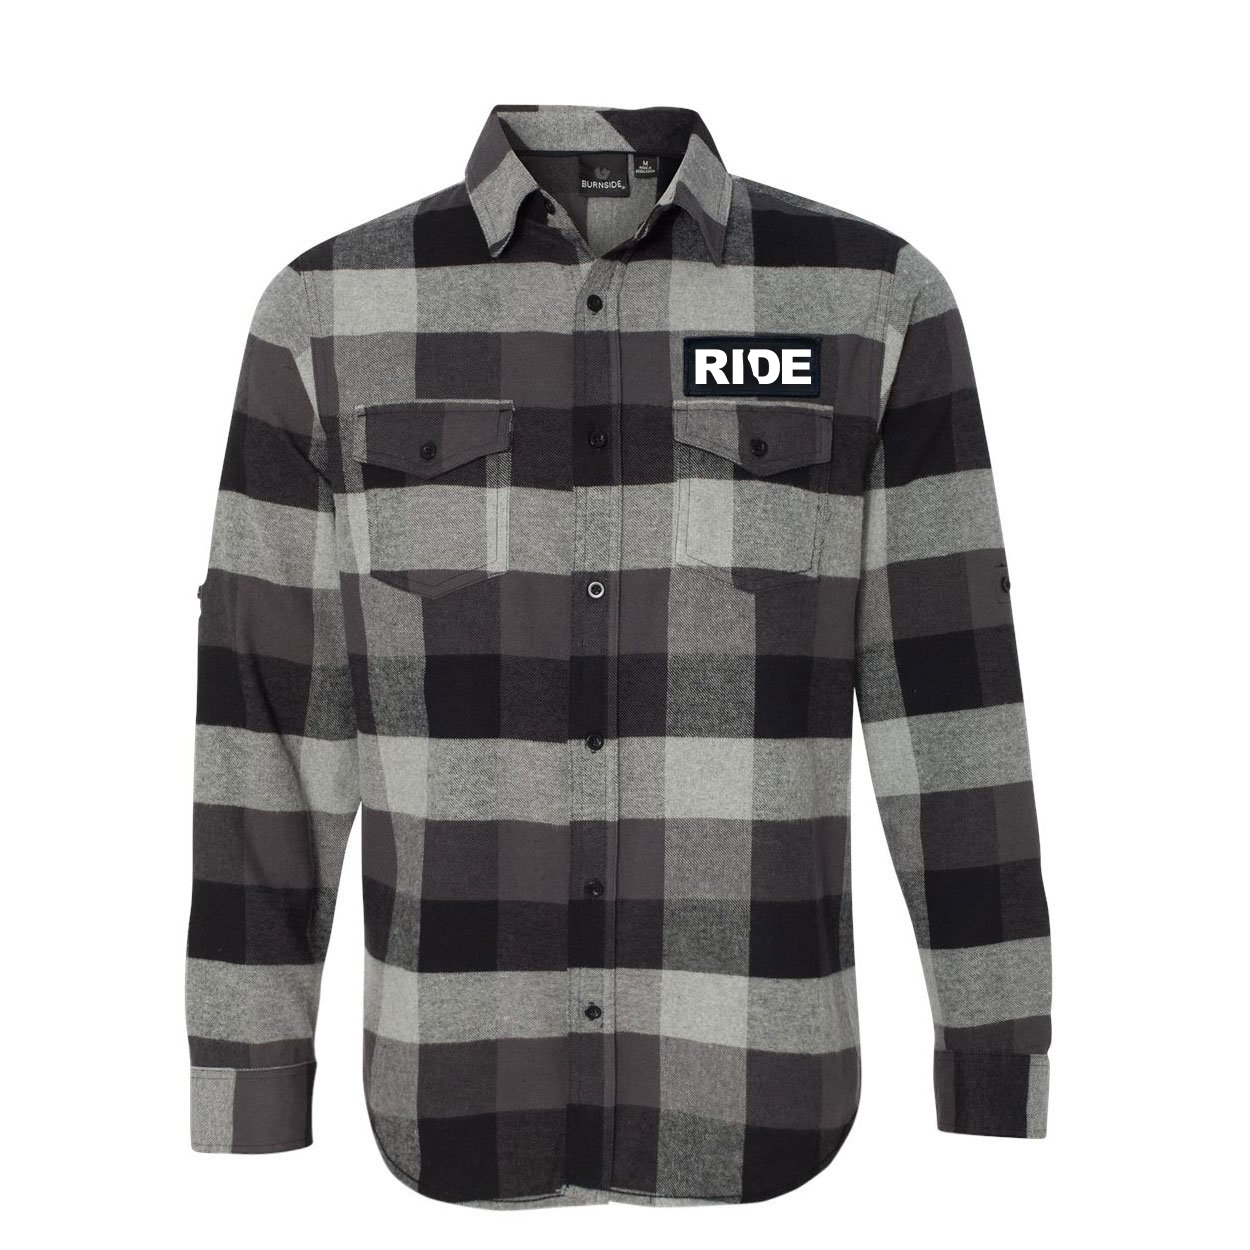 Ride Delaware Classic Unisex Long Sleeve Woven Patch Flannel Shirt Black/Gray (White Logo)